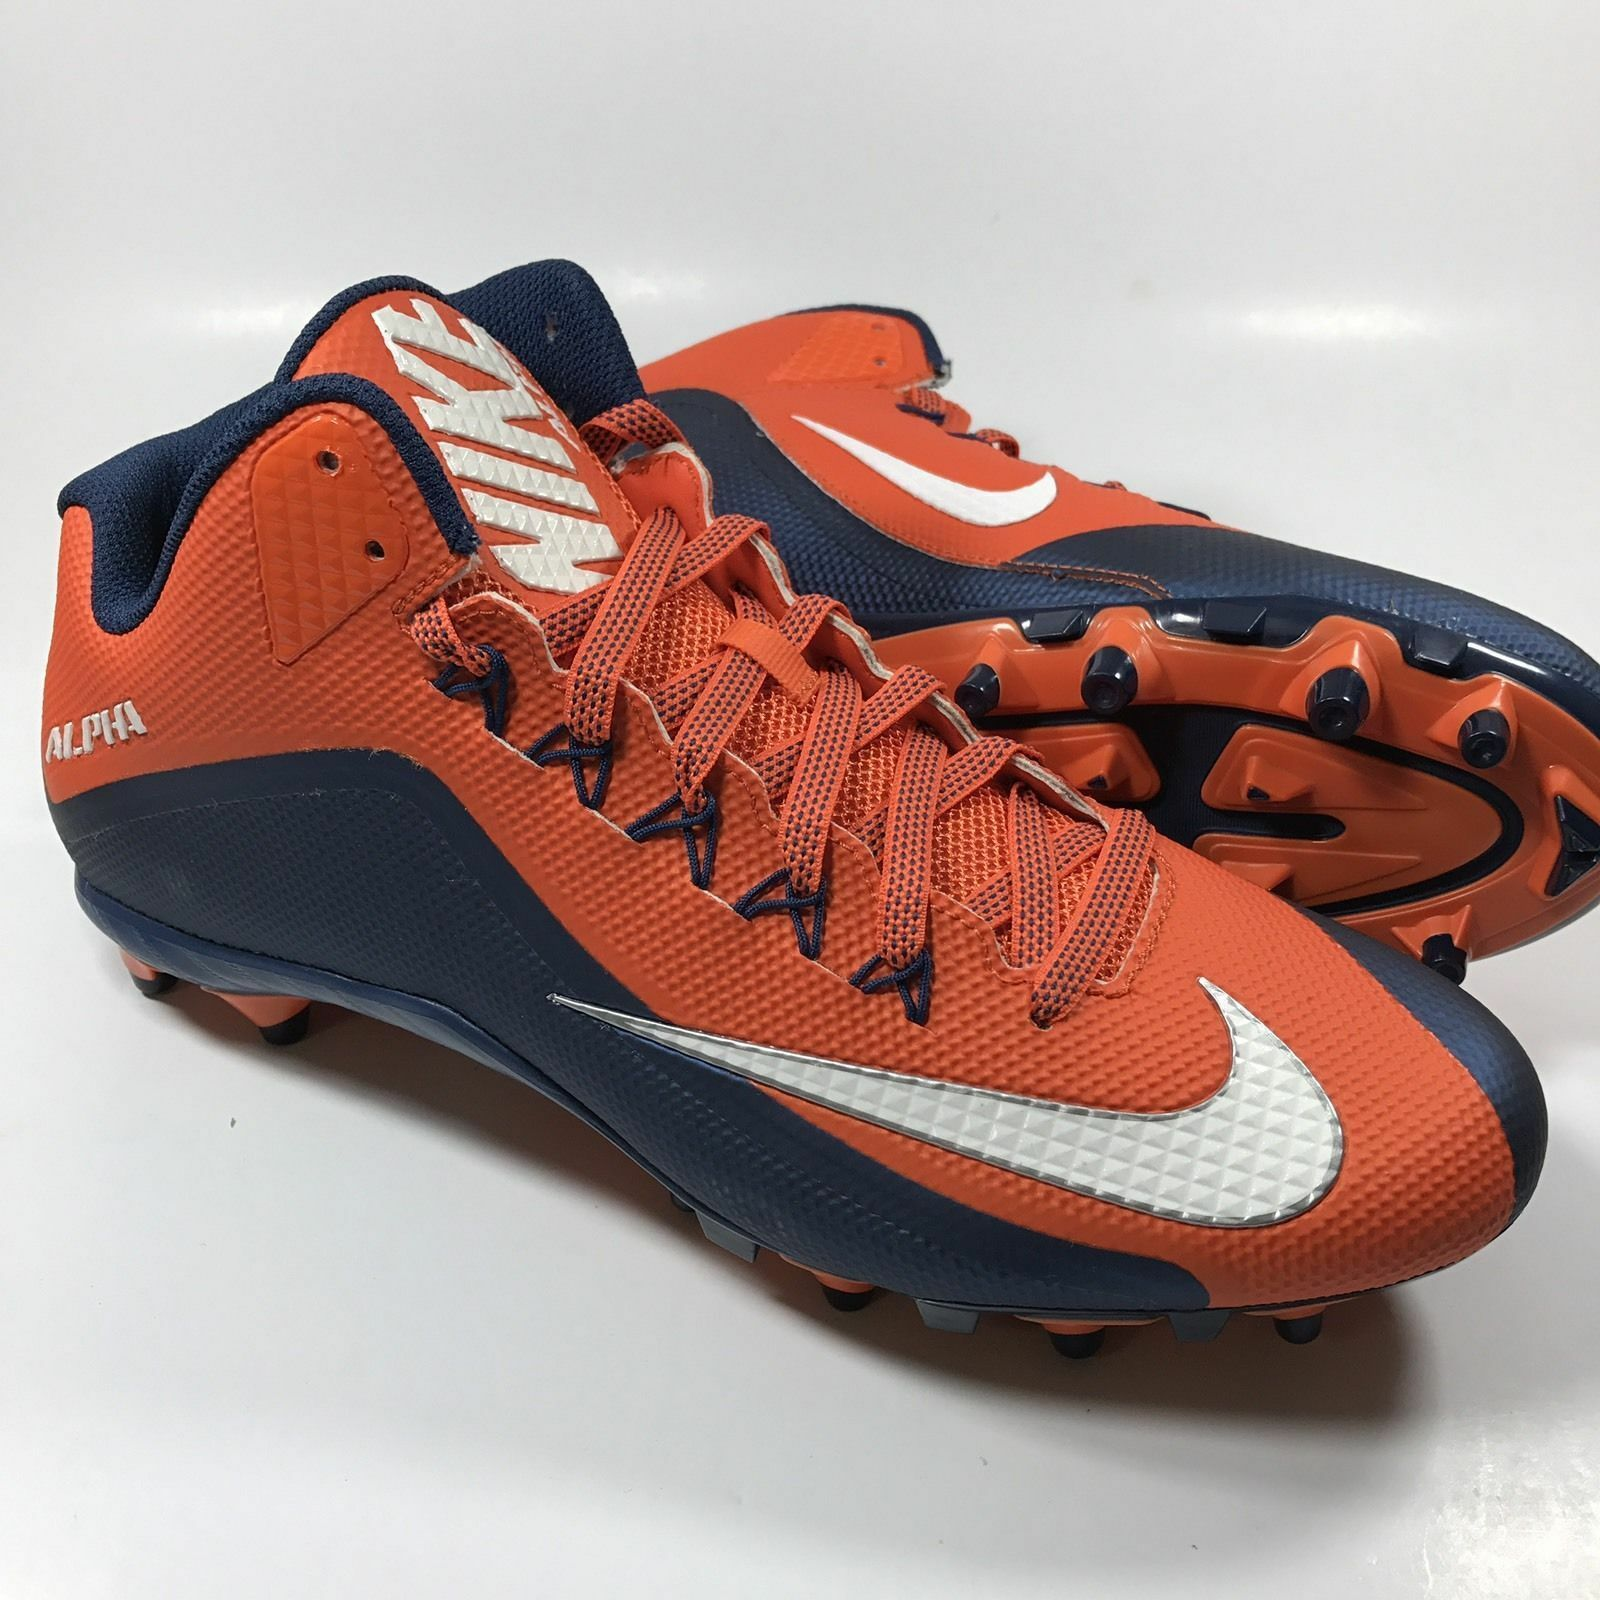 Nike Alpha Football Cleat 729445-810 Limited Print Size 15